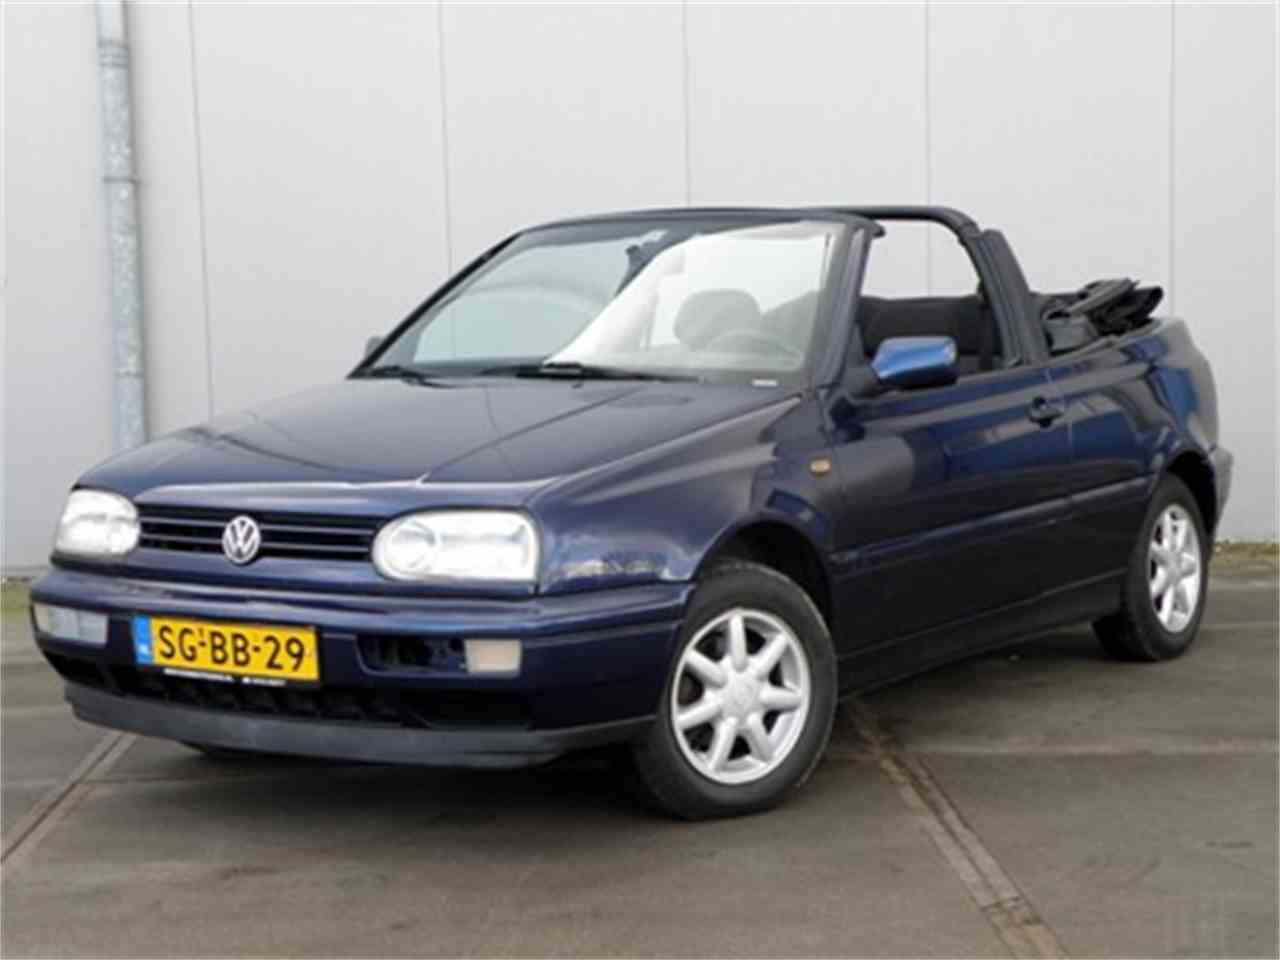 Large Picture of '97 Golf - LSYG